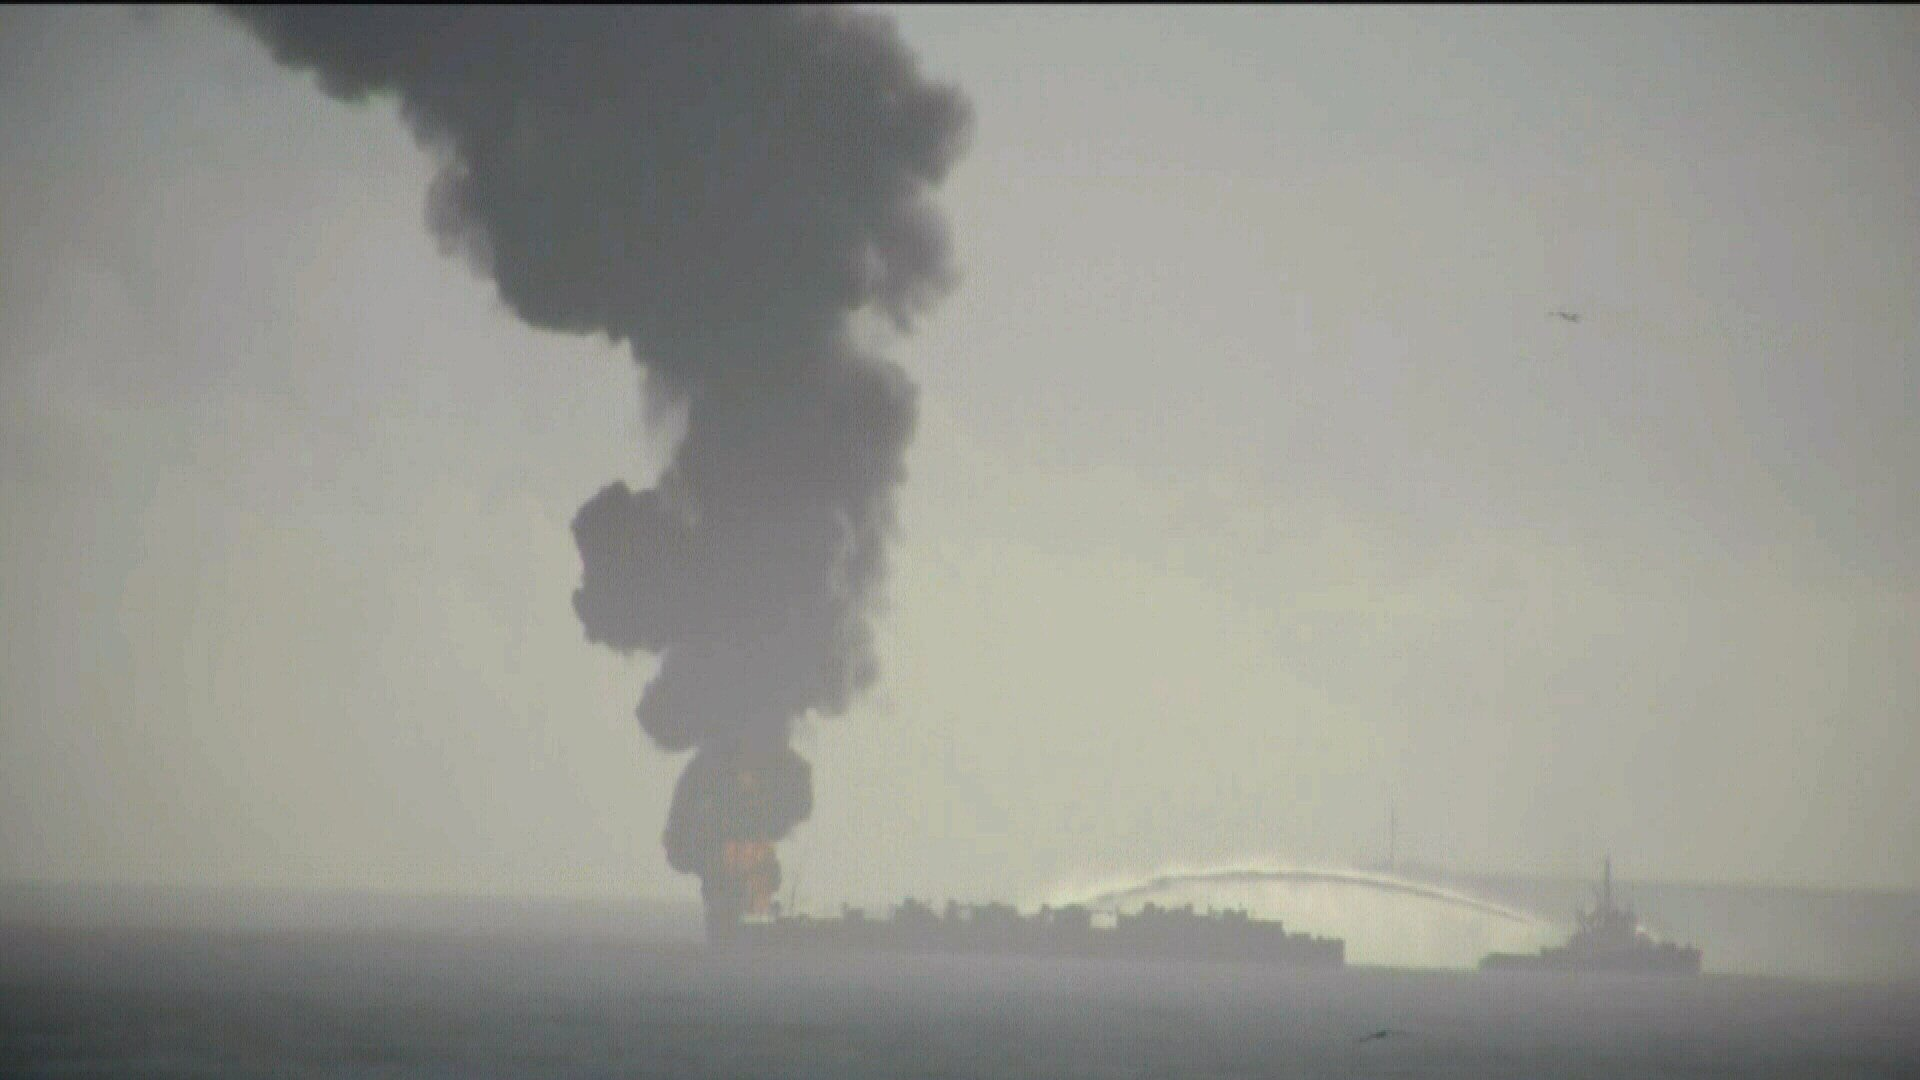 The Coast Guard and their Port partners discussed the response to October's barge explosion, including what went well and what could be improved.